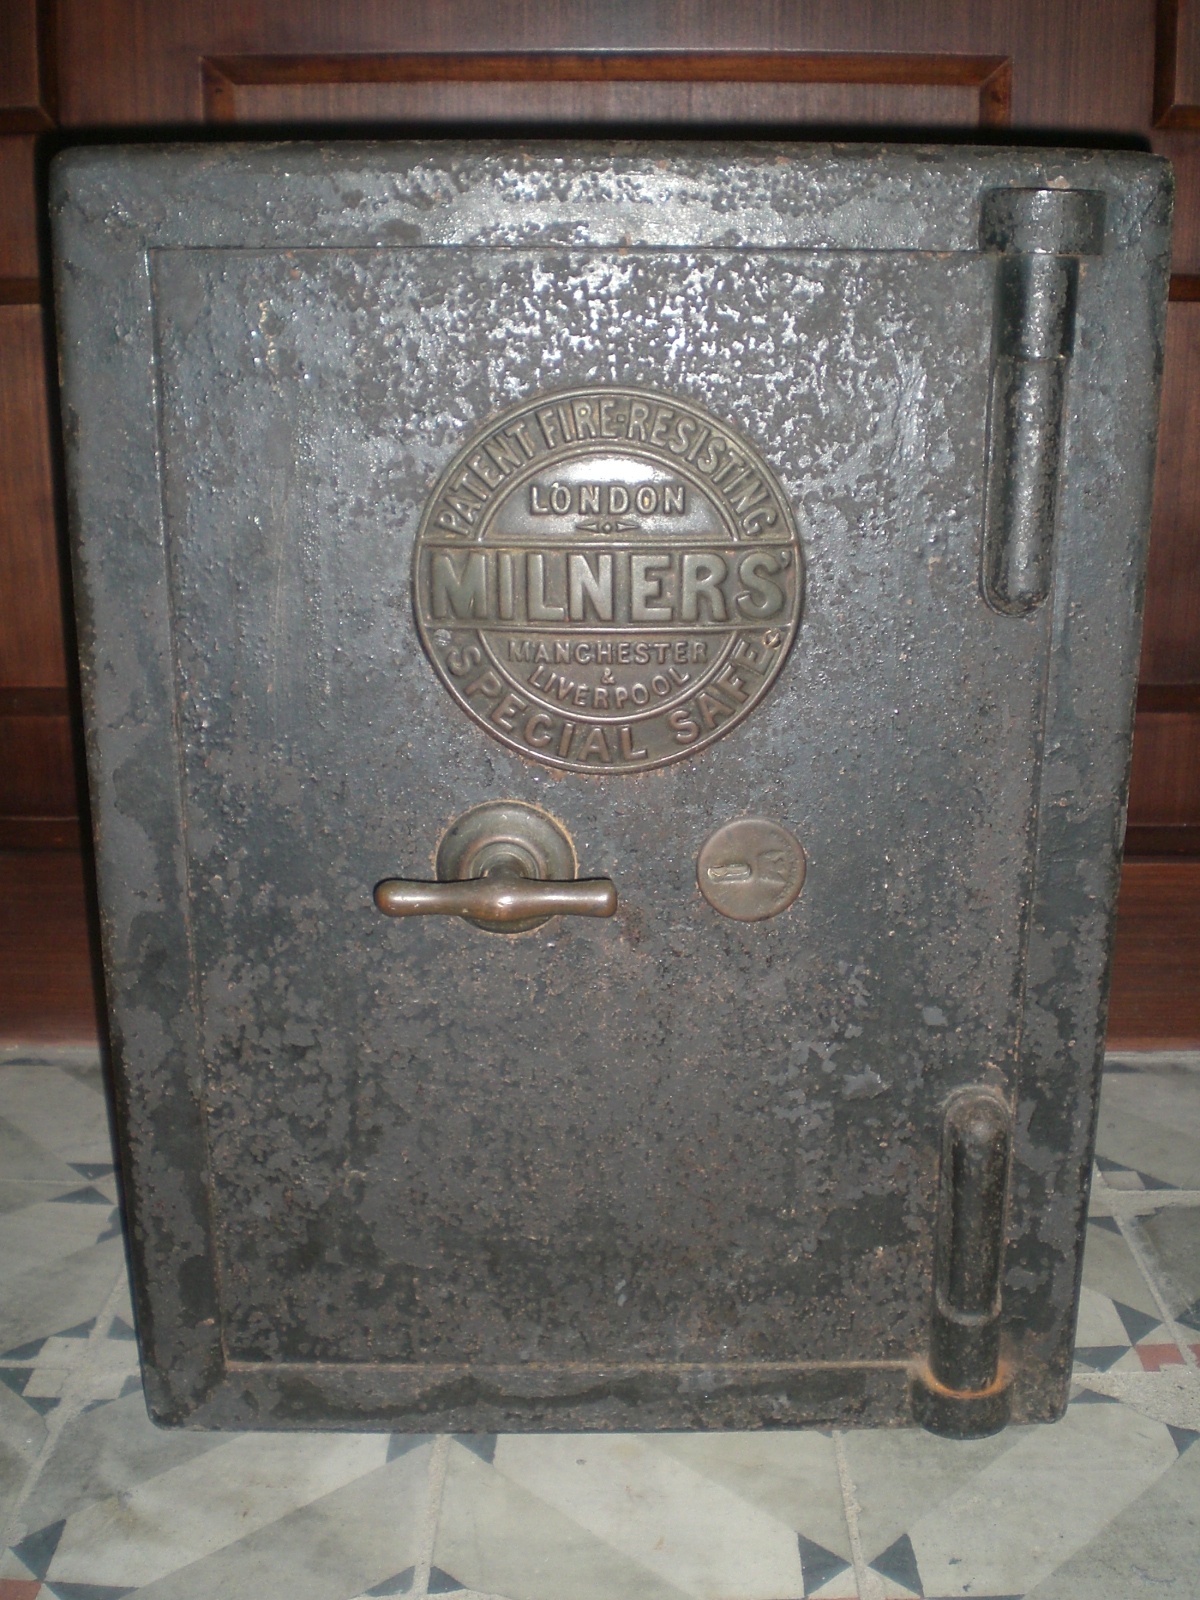 File:HK Museum of History London Milners Fire Resisting Safe